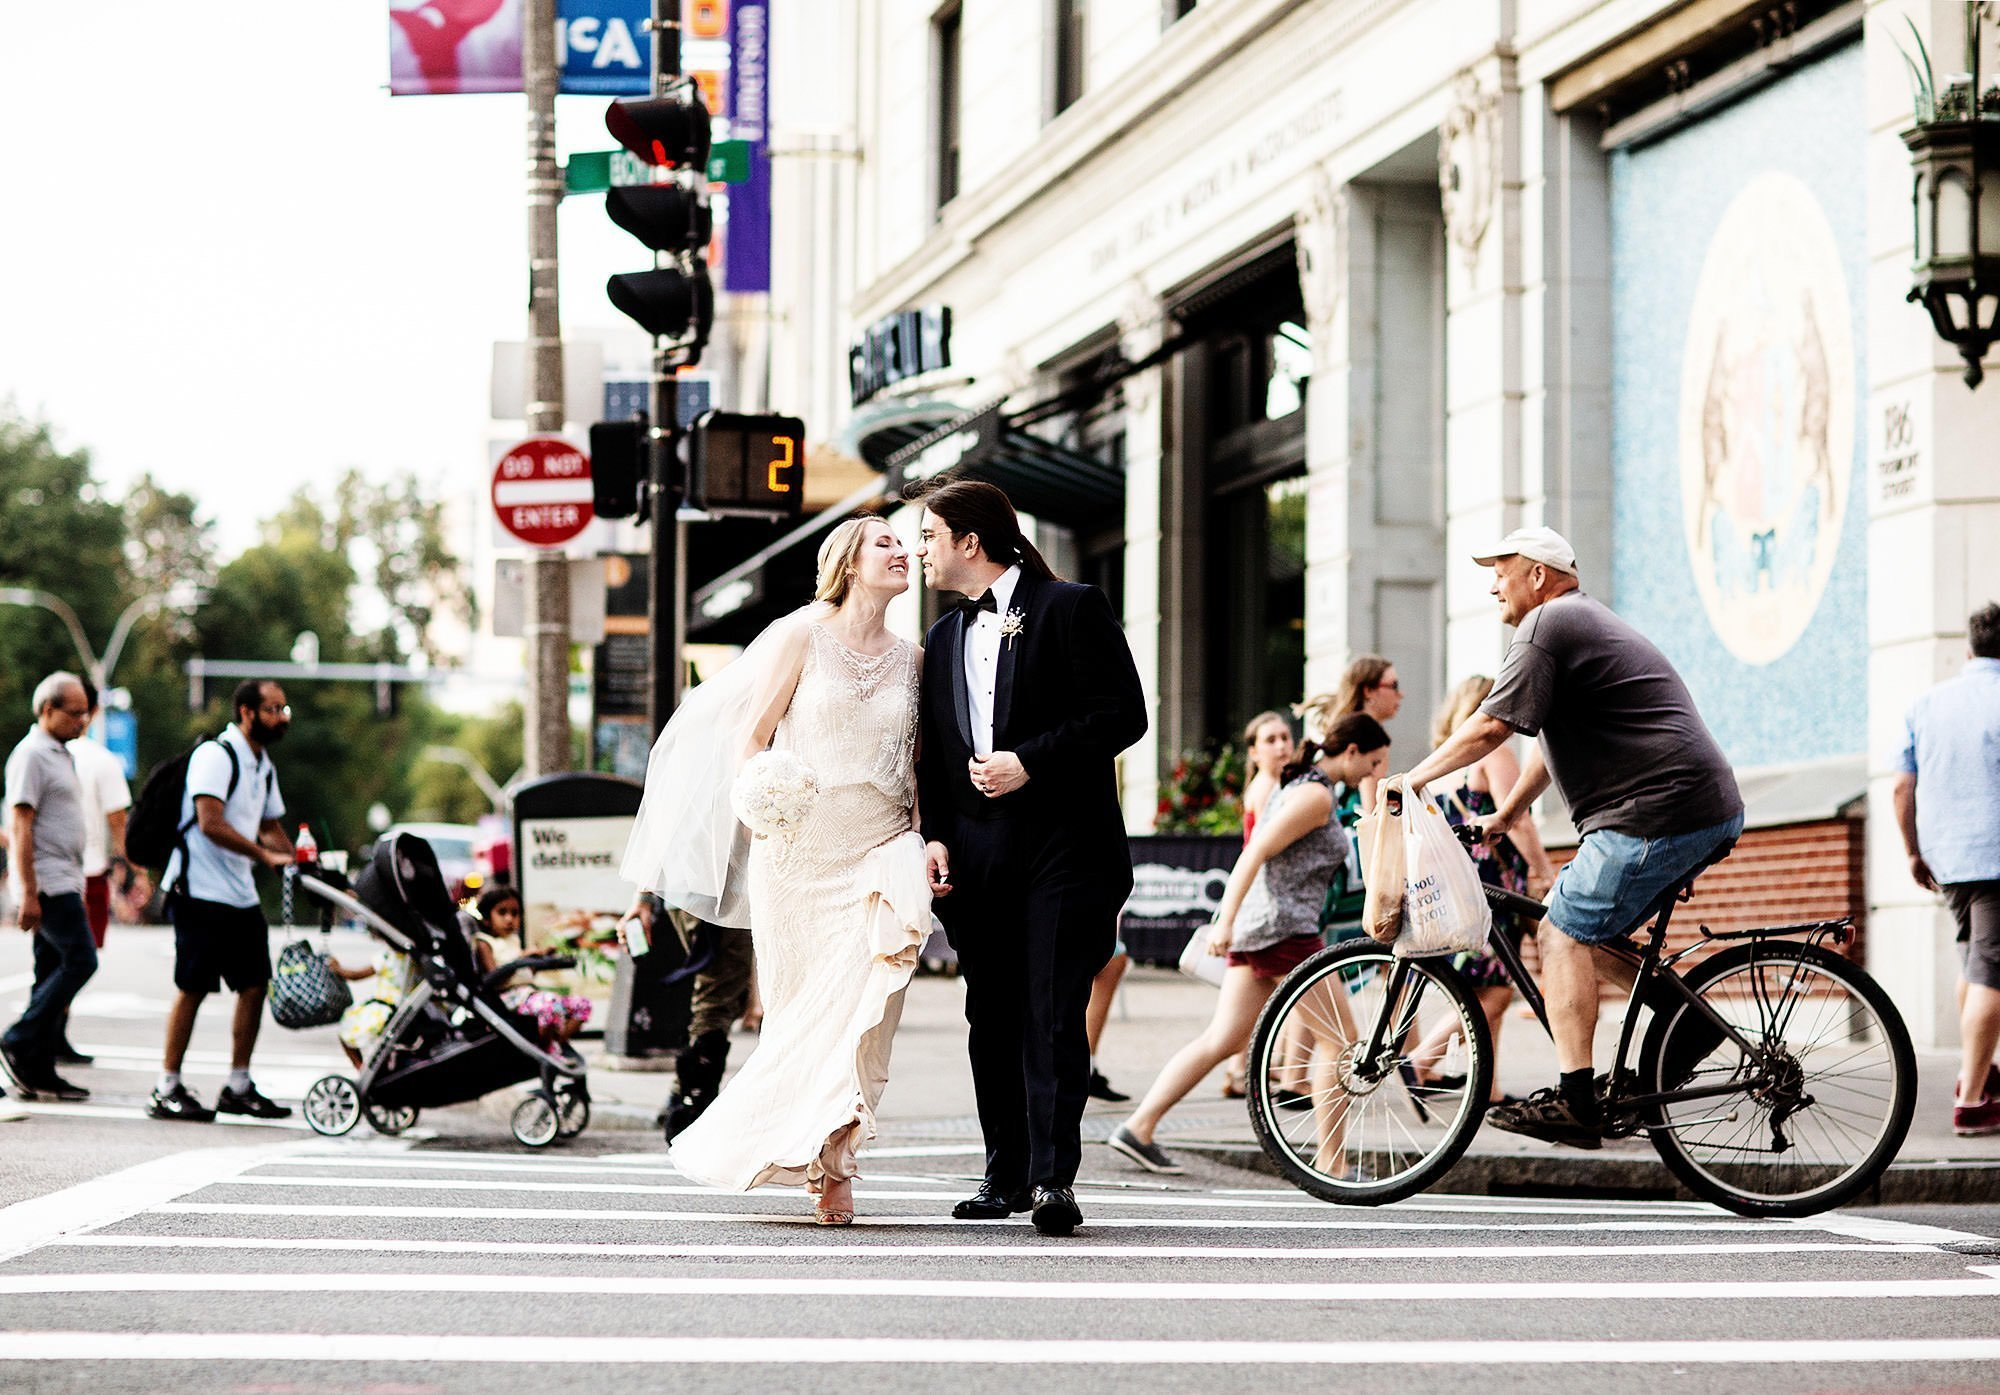 The bride and groom enter the crosswalk during their Courtyard Boston Downtown Wedding.